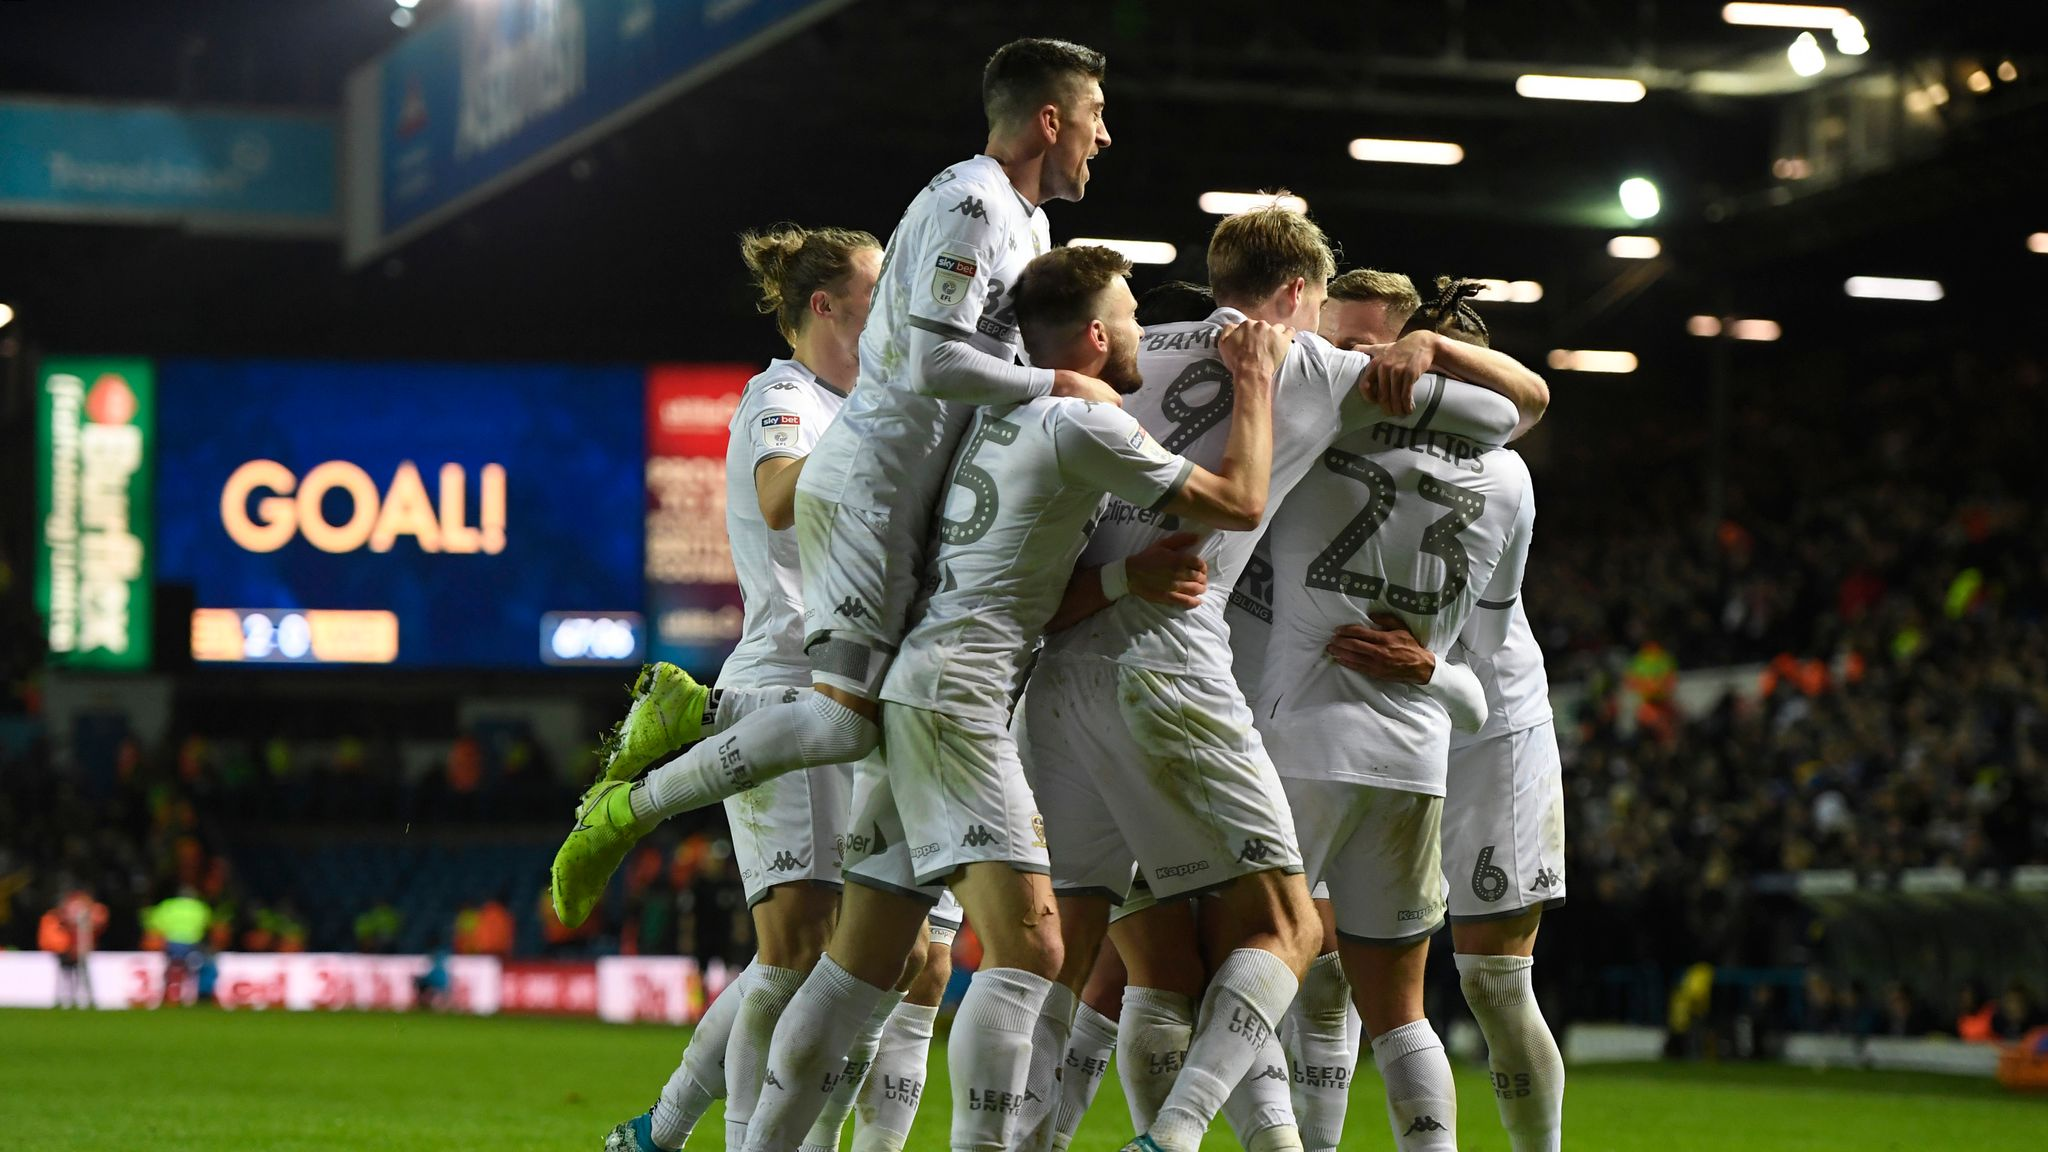 Championship highlights and round-up: Leeds move top, Fulham beaten